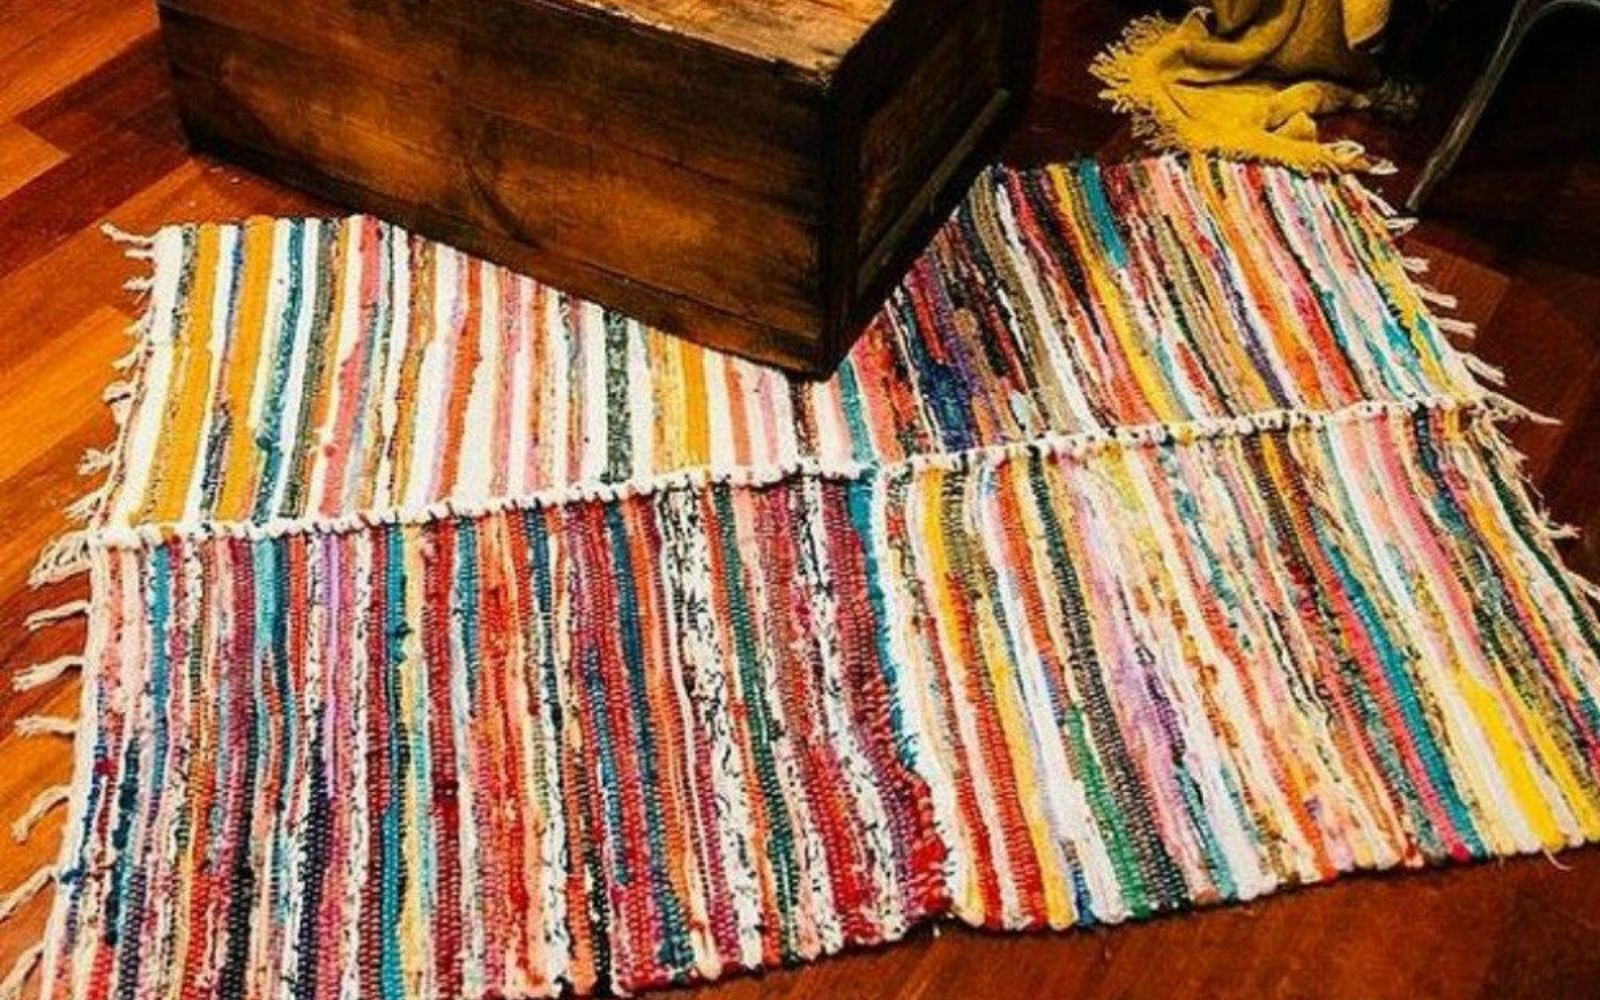 s transform dollar store rugs with these 11 stunning ideas, reupholster, Crochet some together to get a designer look